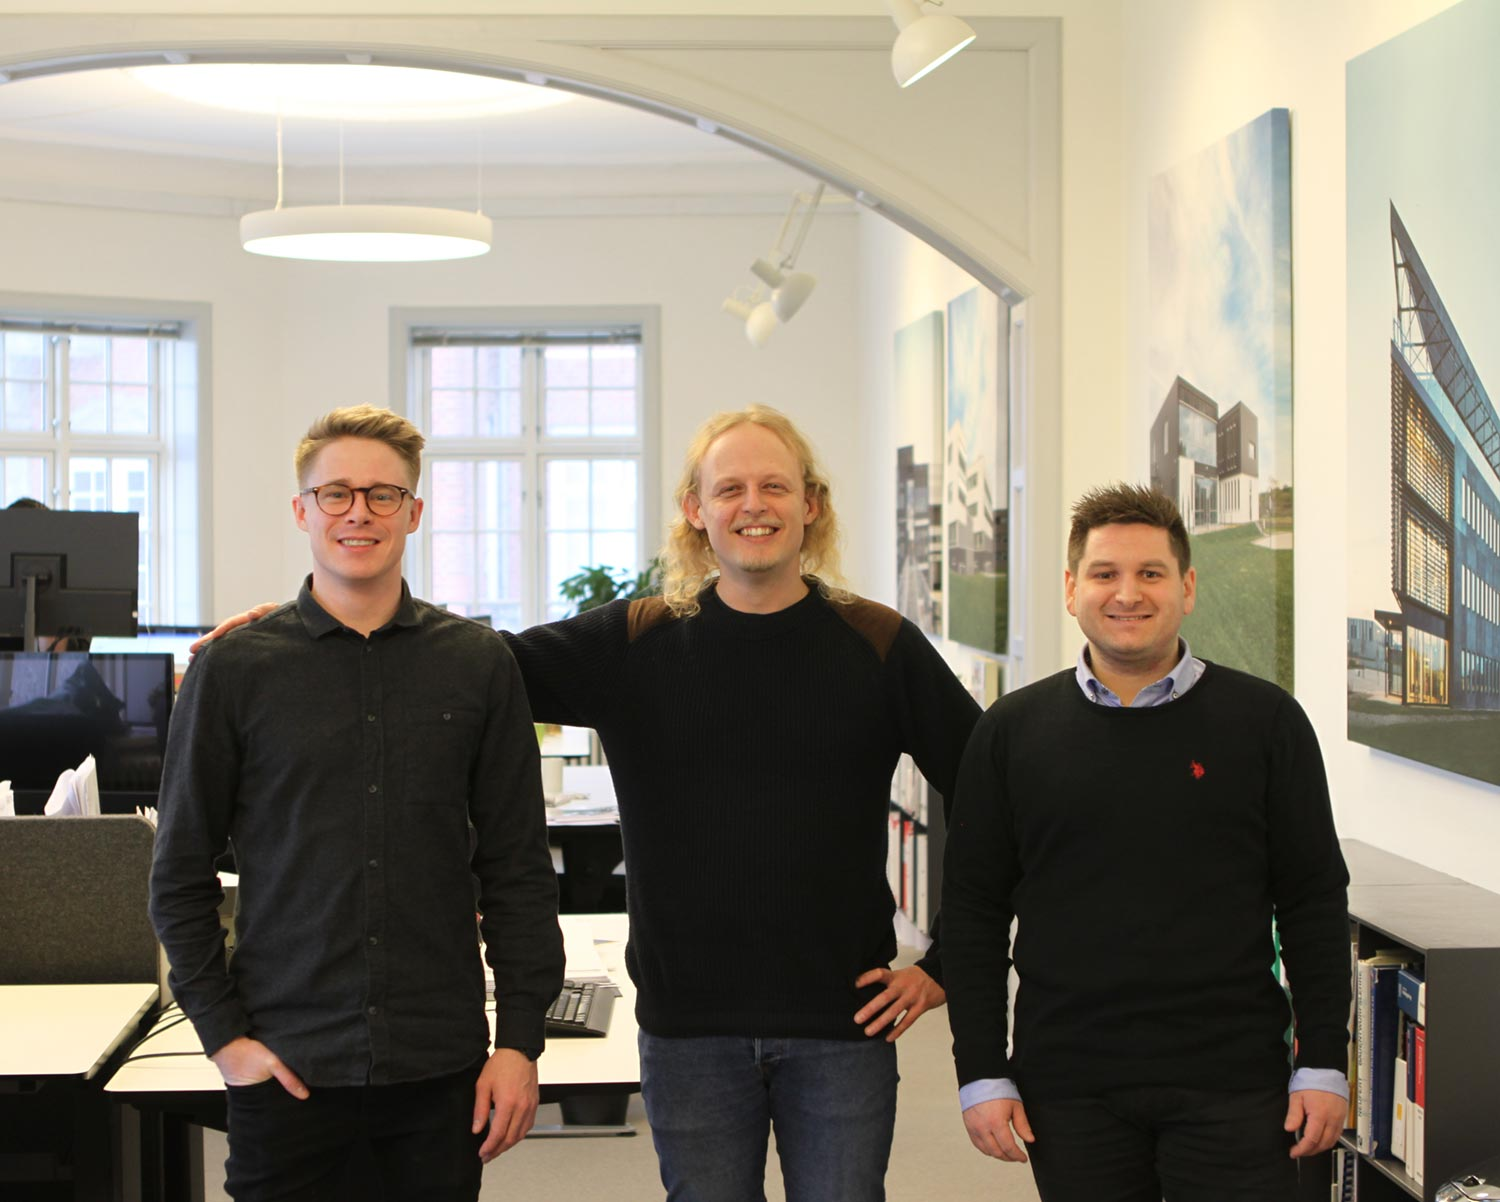 Three new faces at the Aalborg department